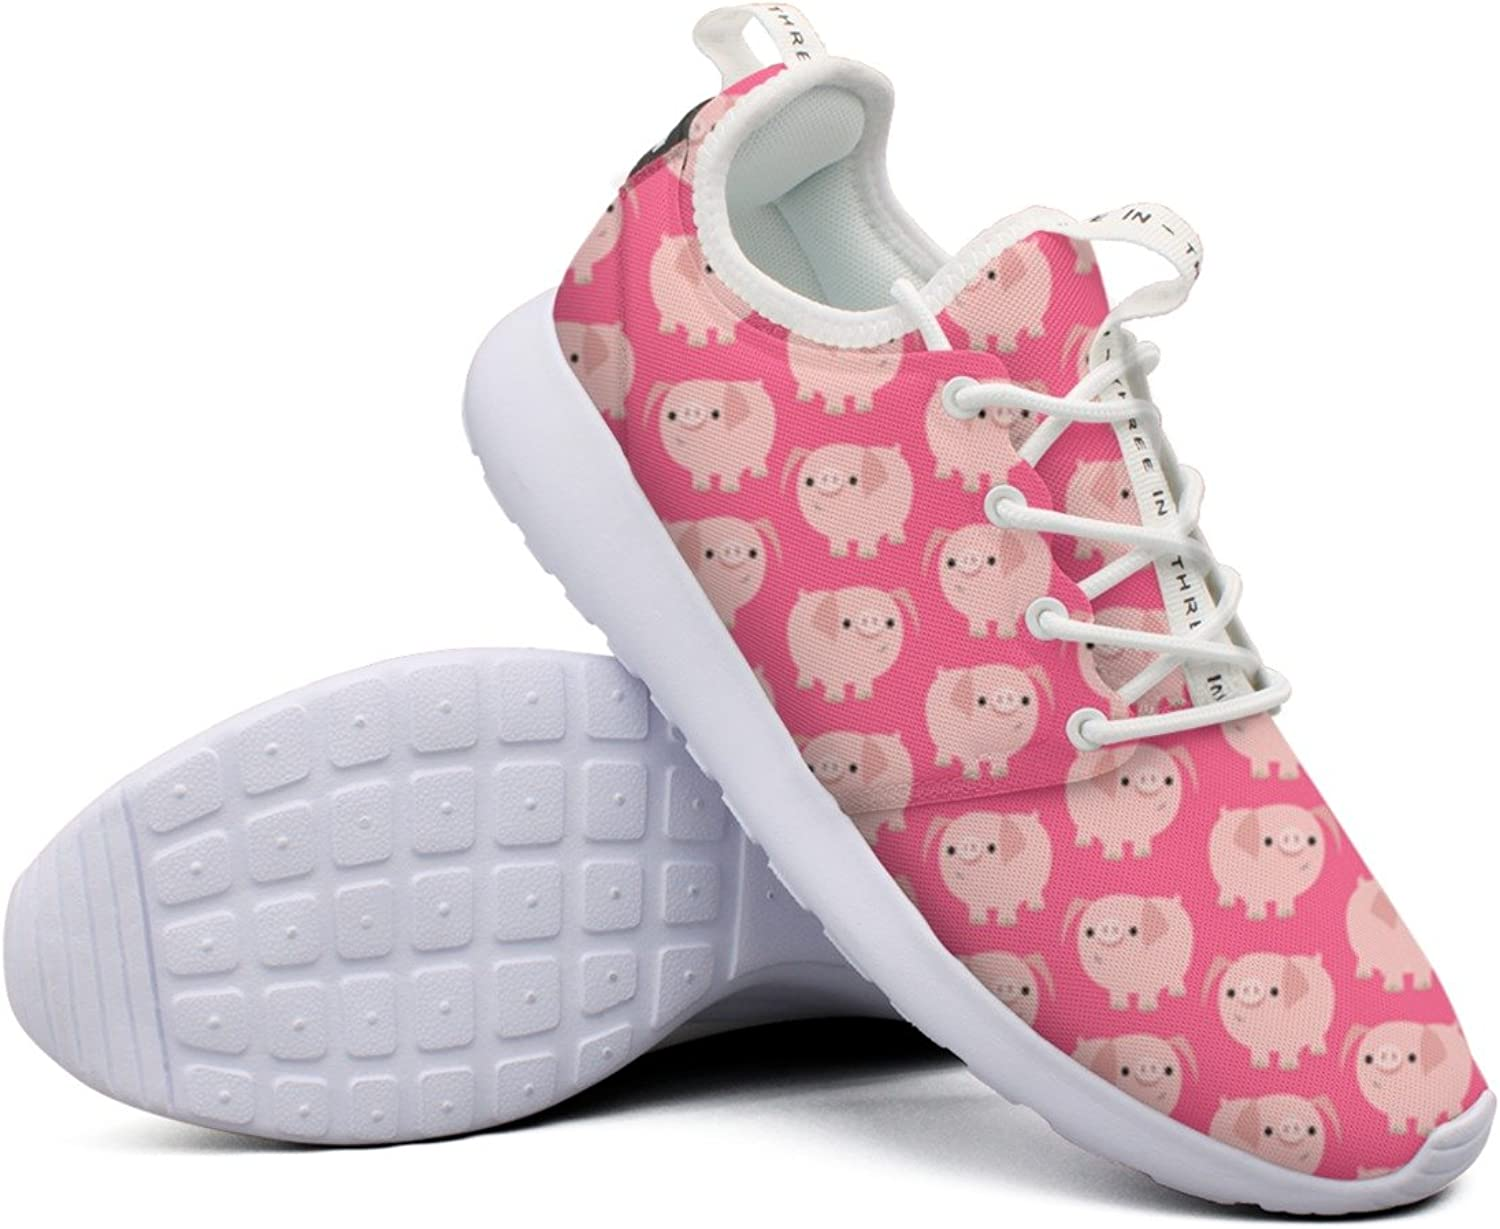 Women Cute Clever Cartoon Pigs colorful Top Jogger Design Running shoes